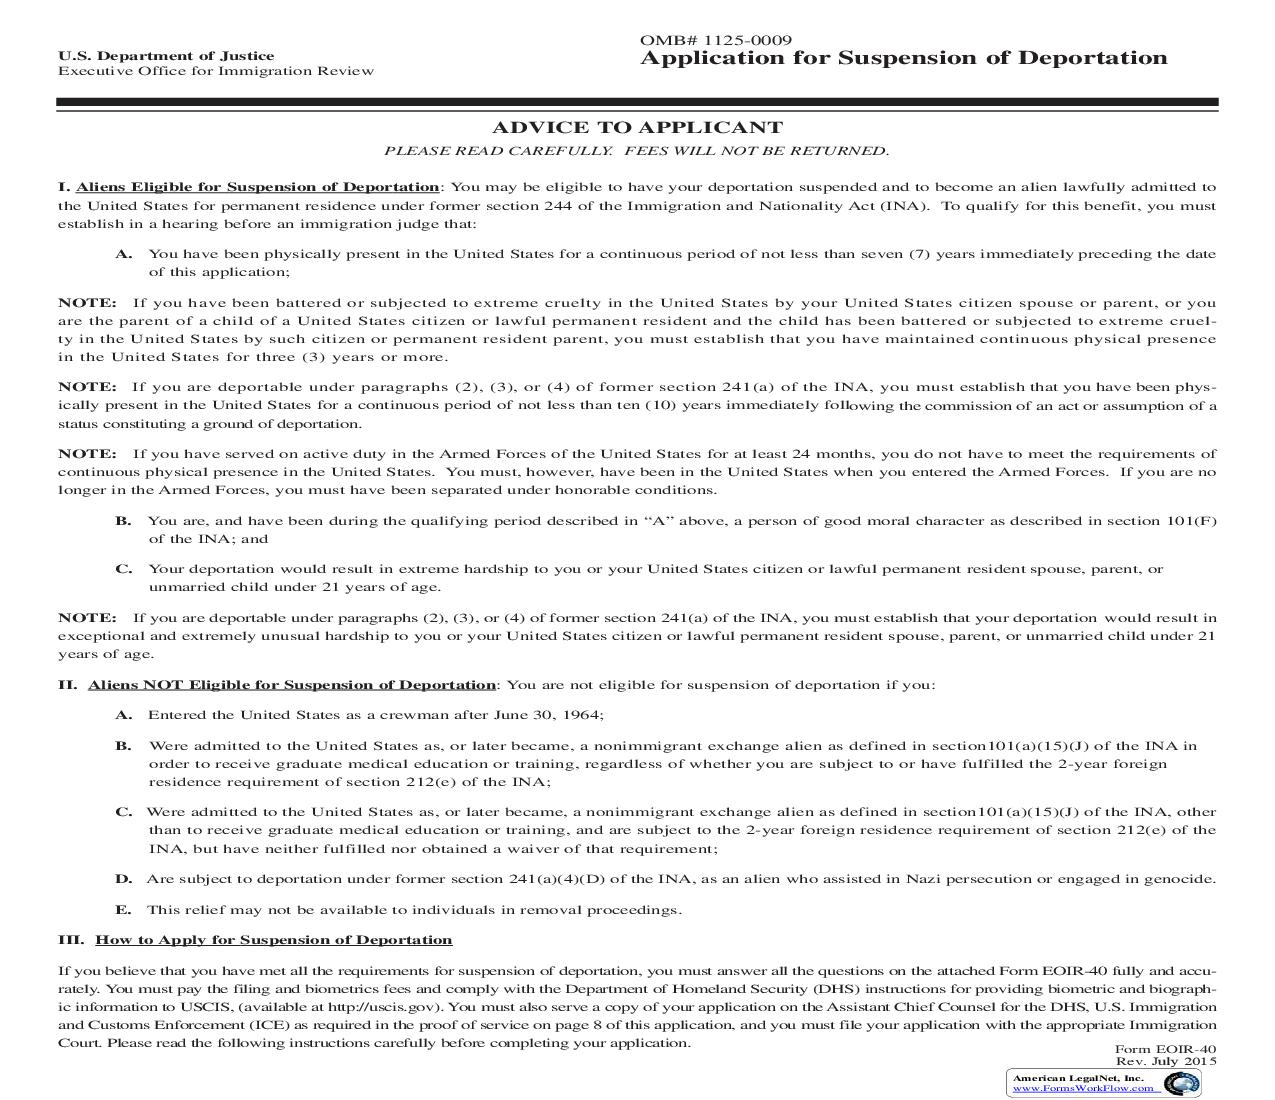 Application For Suspension Of Deportation {EOIR-40} | Pdf Fpdf Doc Docx | Official Federal Forms